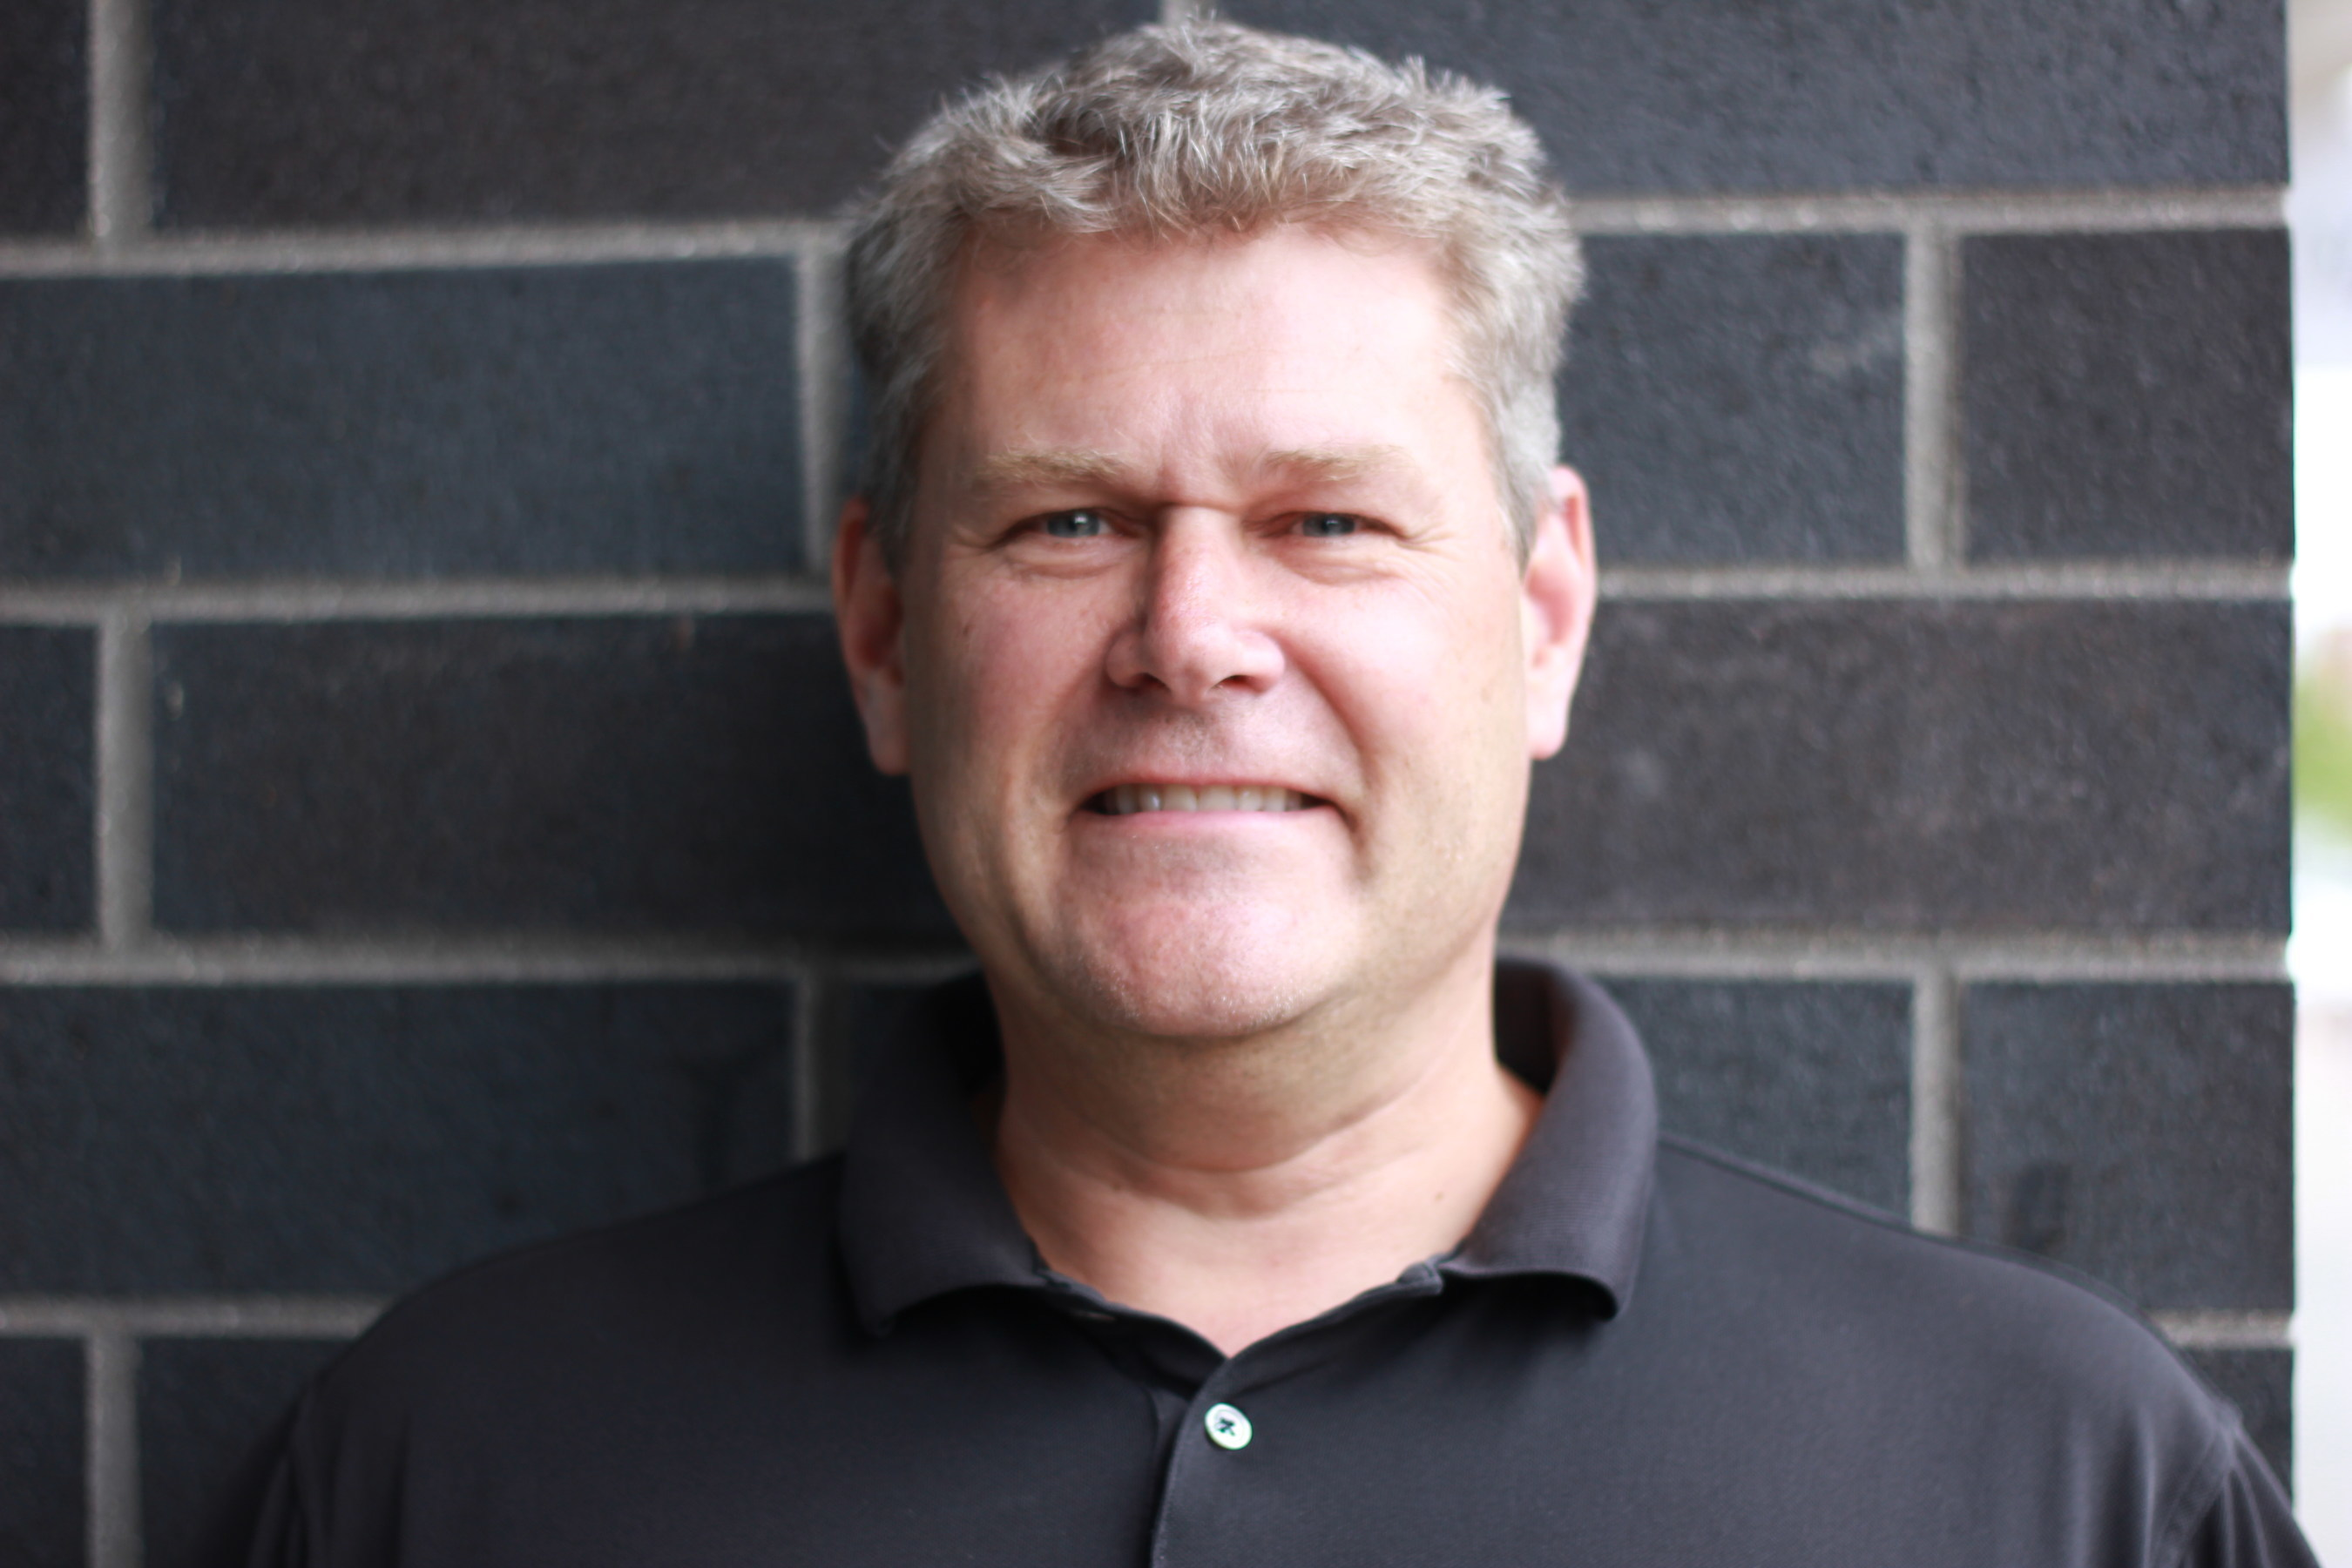 Modustri announces the addition of Dave Baarman (pictured), a leading expert in intellectual property, to its staff.